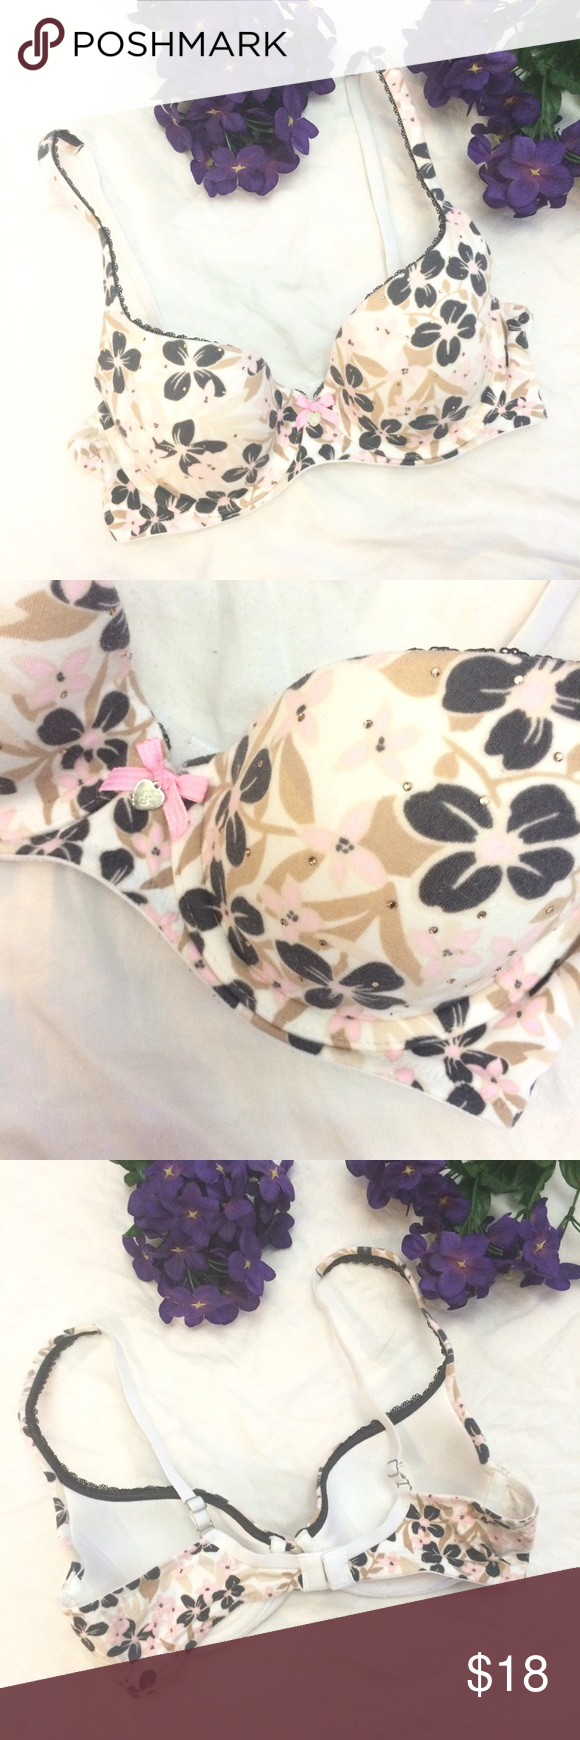 Body By Victoria Secret Demi Floral Rhinestone Bra This Body by Victoria Secret Lined Demi bra is size 34B and is cream colored with a pink and black floral print. It has tiny rhinestone embellishments and a lace trim. Also has a cute bow and VS logo dangle in the center. Does not have push-up padding. Very good used condition for slight wash wear. Victoria's Secret Intimates & Sleepwear Bras